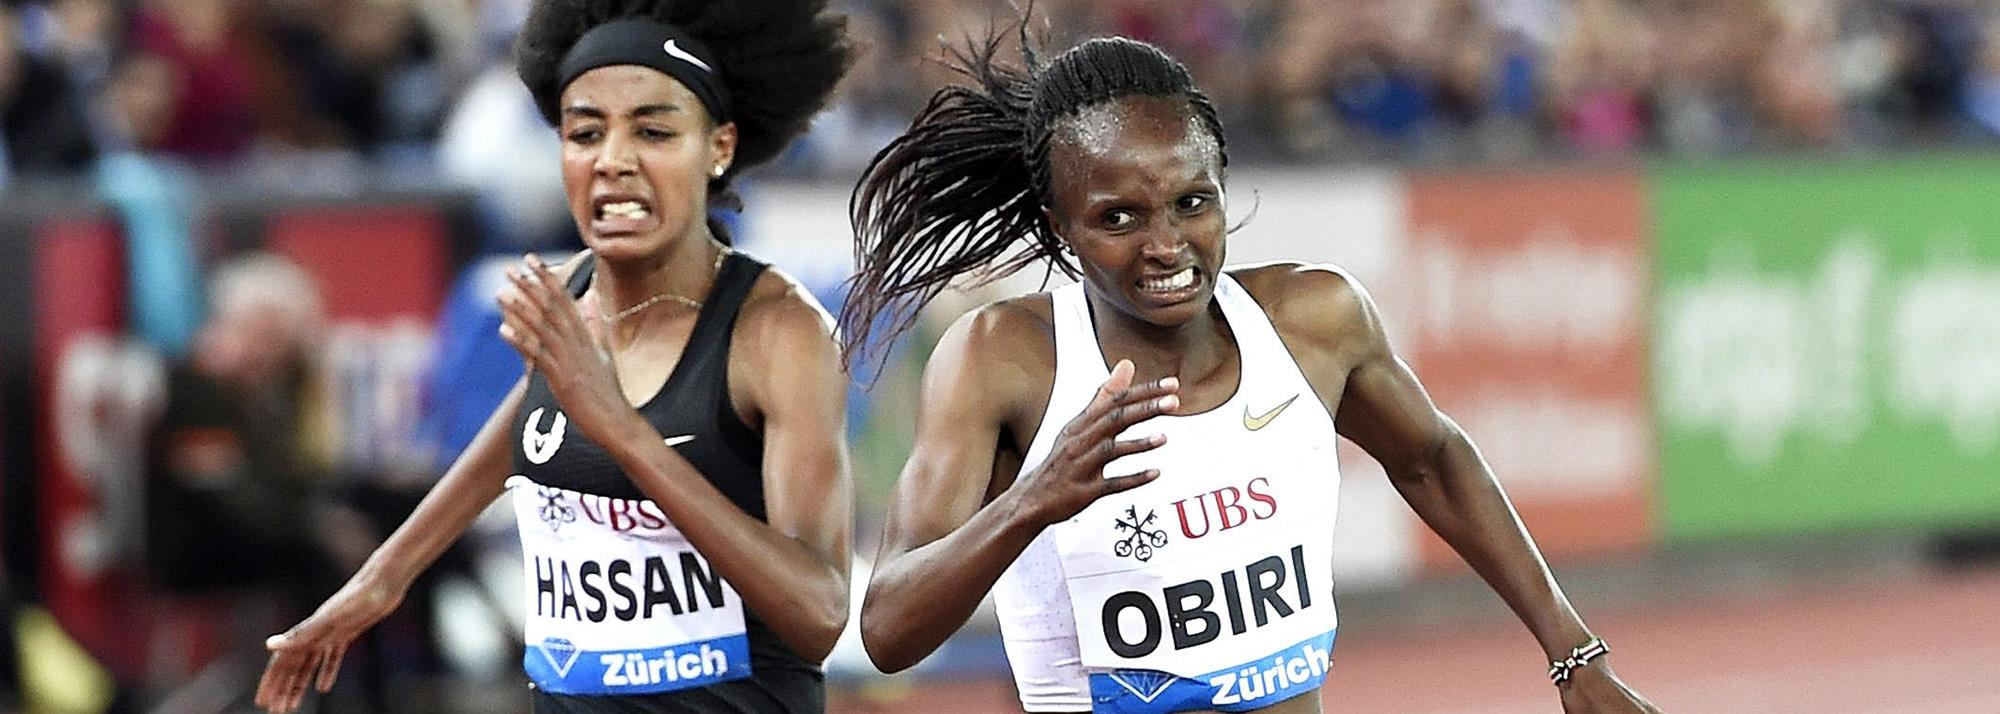 Global champions and world record-holders head to Monaco as Diamond League action resumes